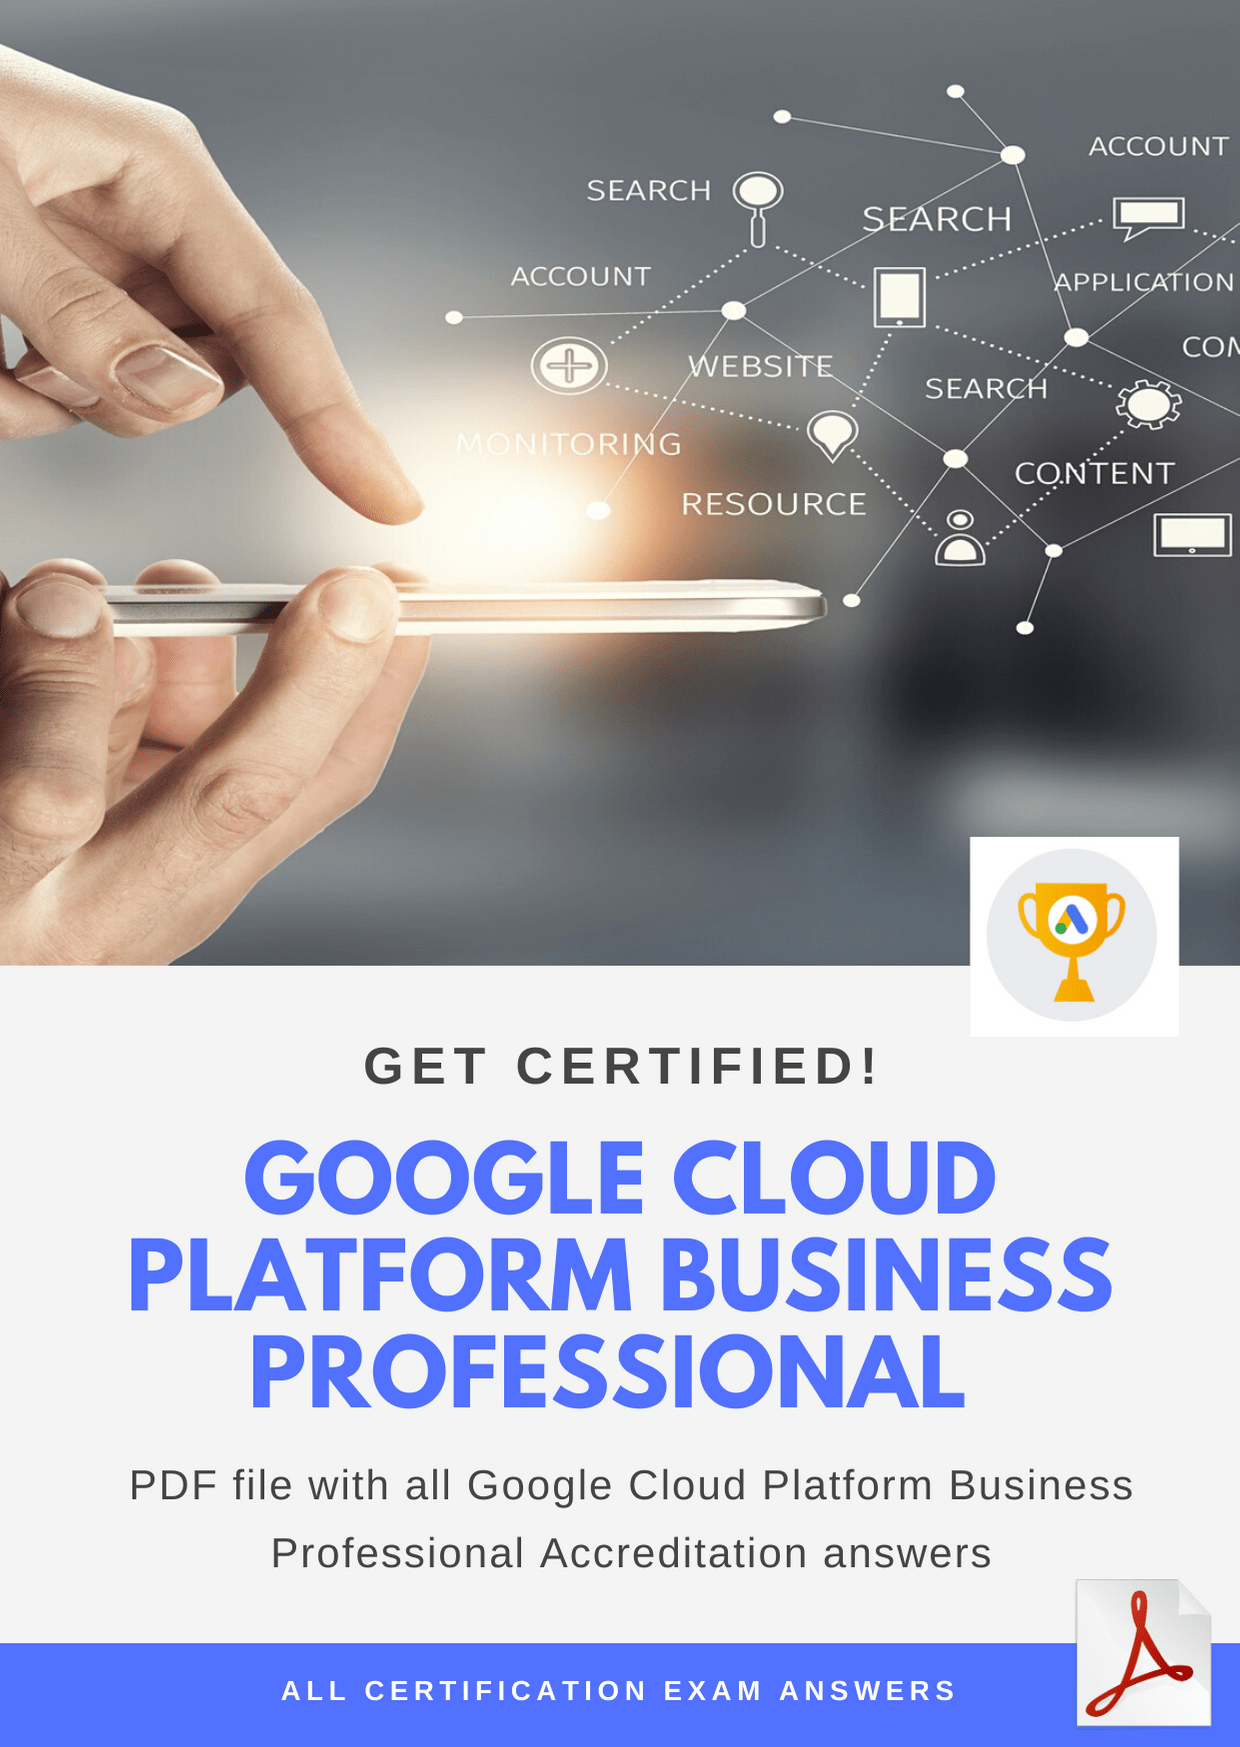 Google Cloud Platform Business Professional Accreditation Answers